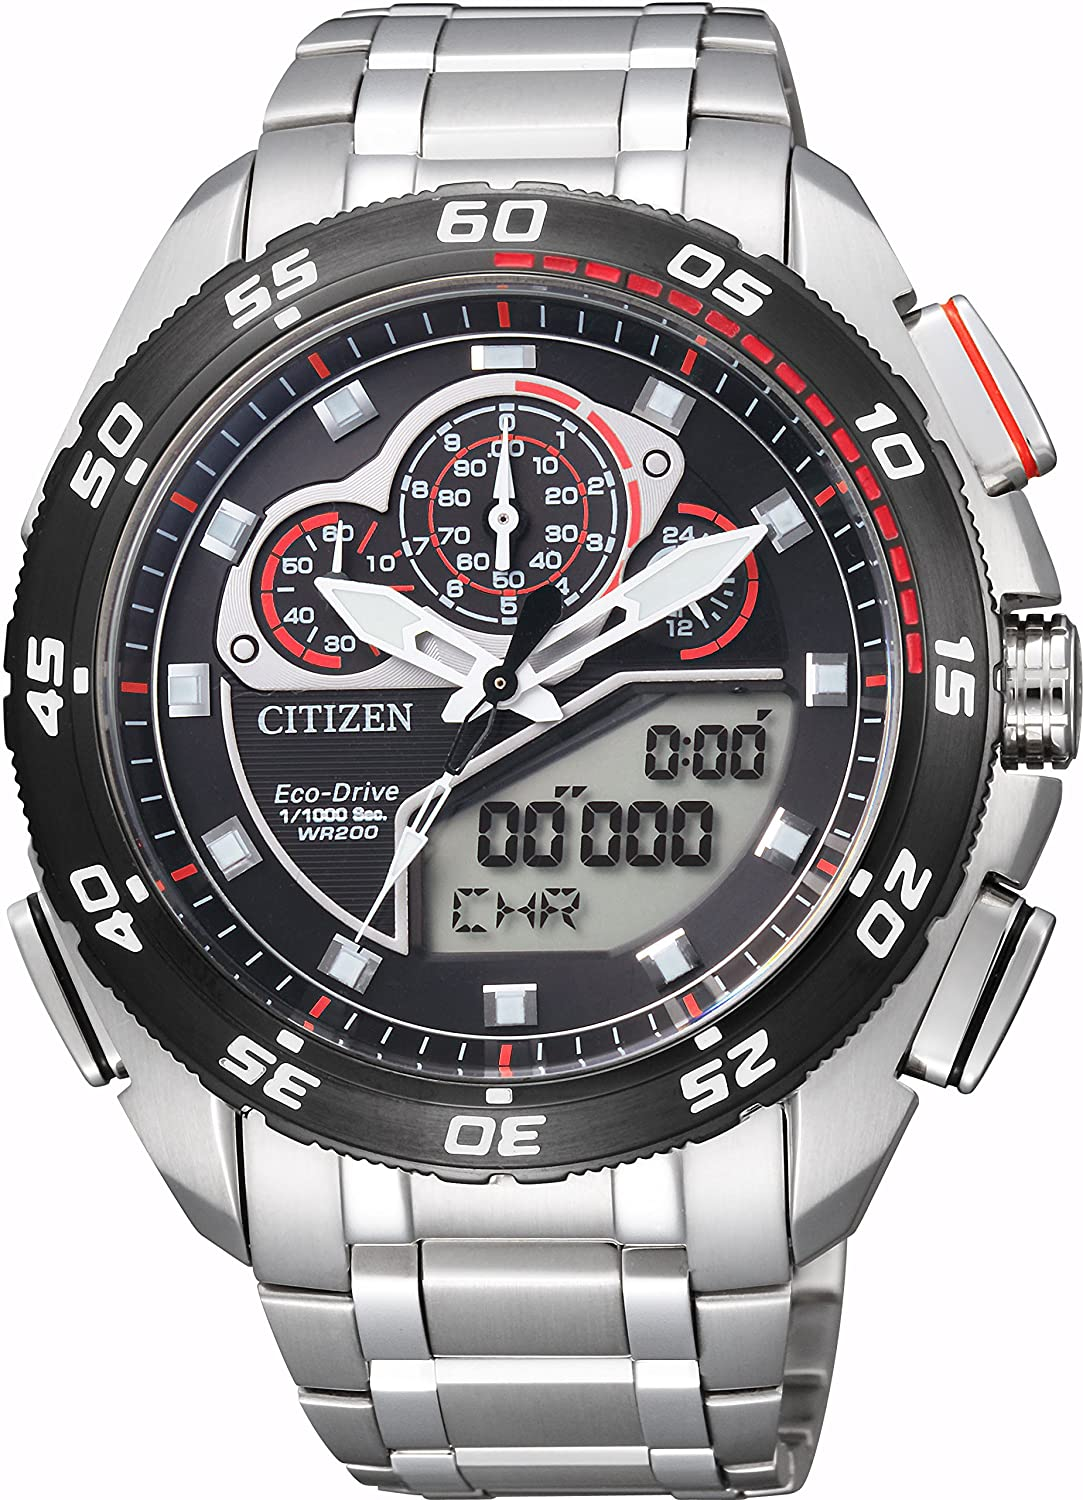 Citizen Promaster Eco-Drive Land - Super Chronograph Men's Watch